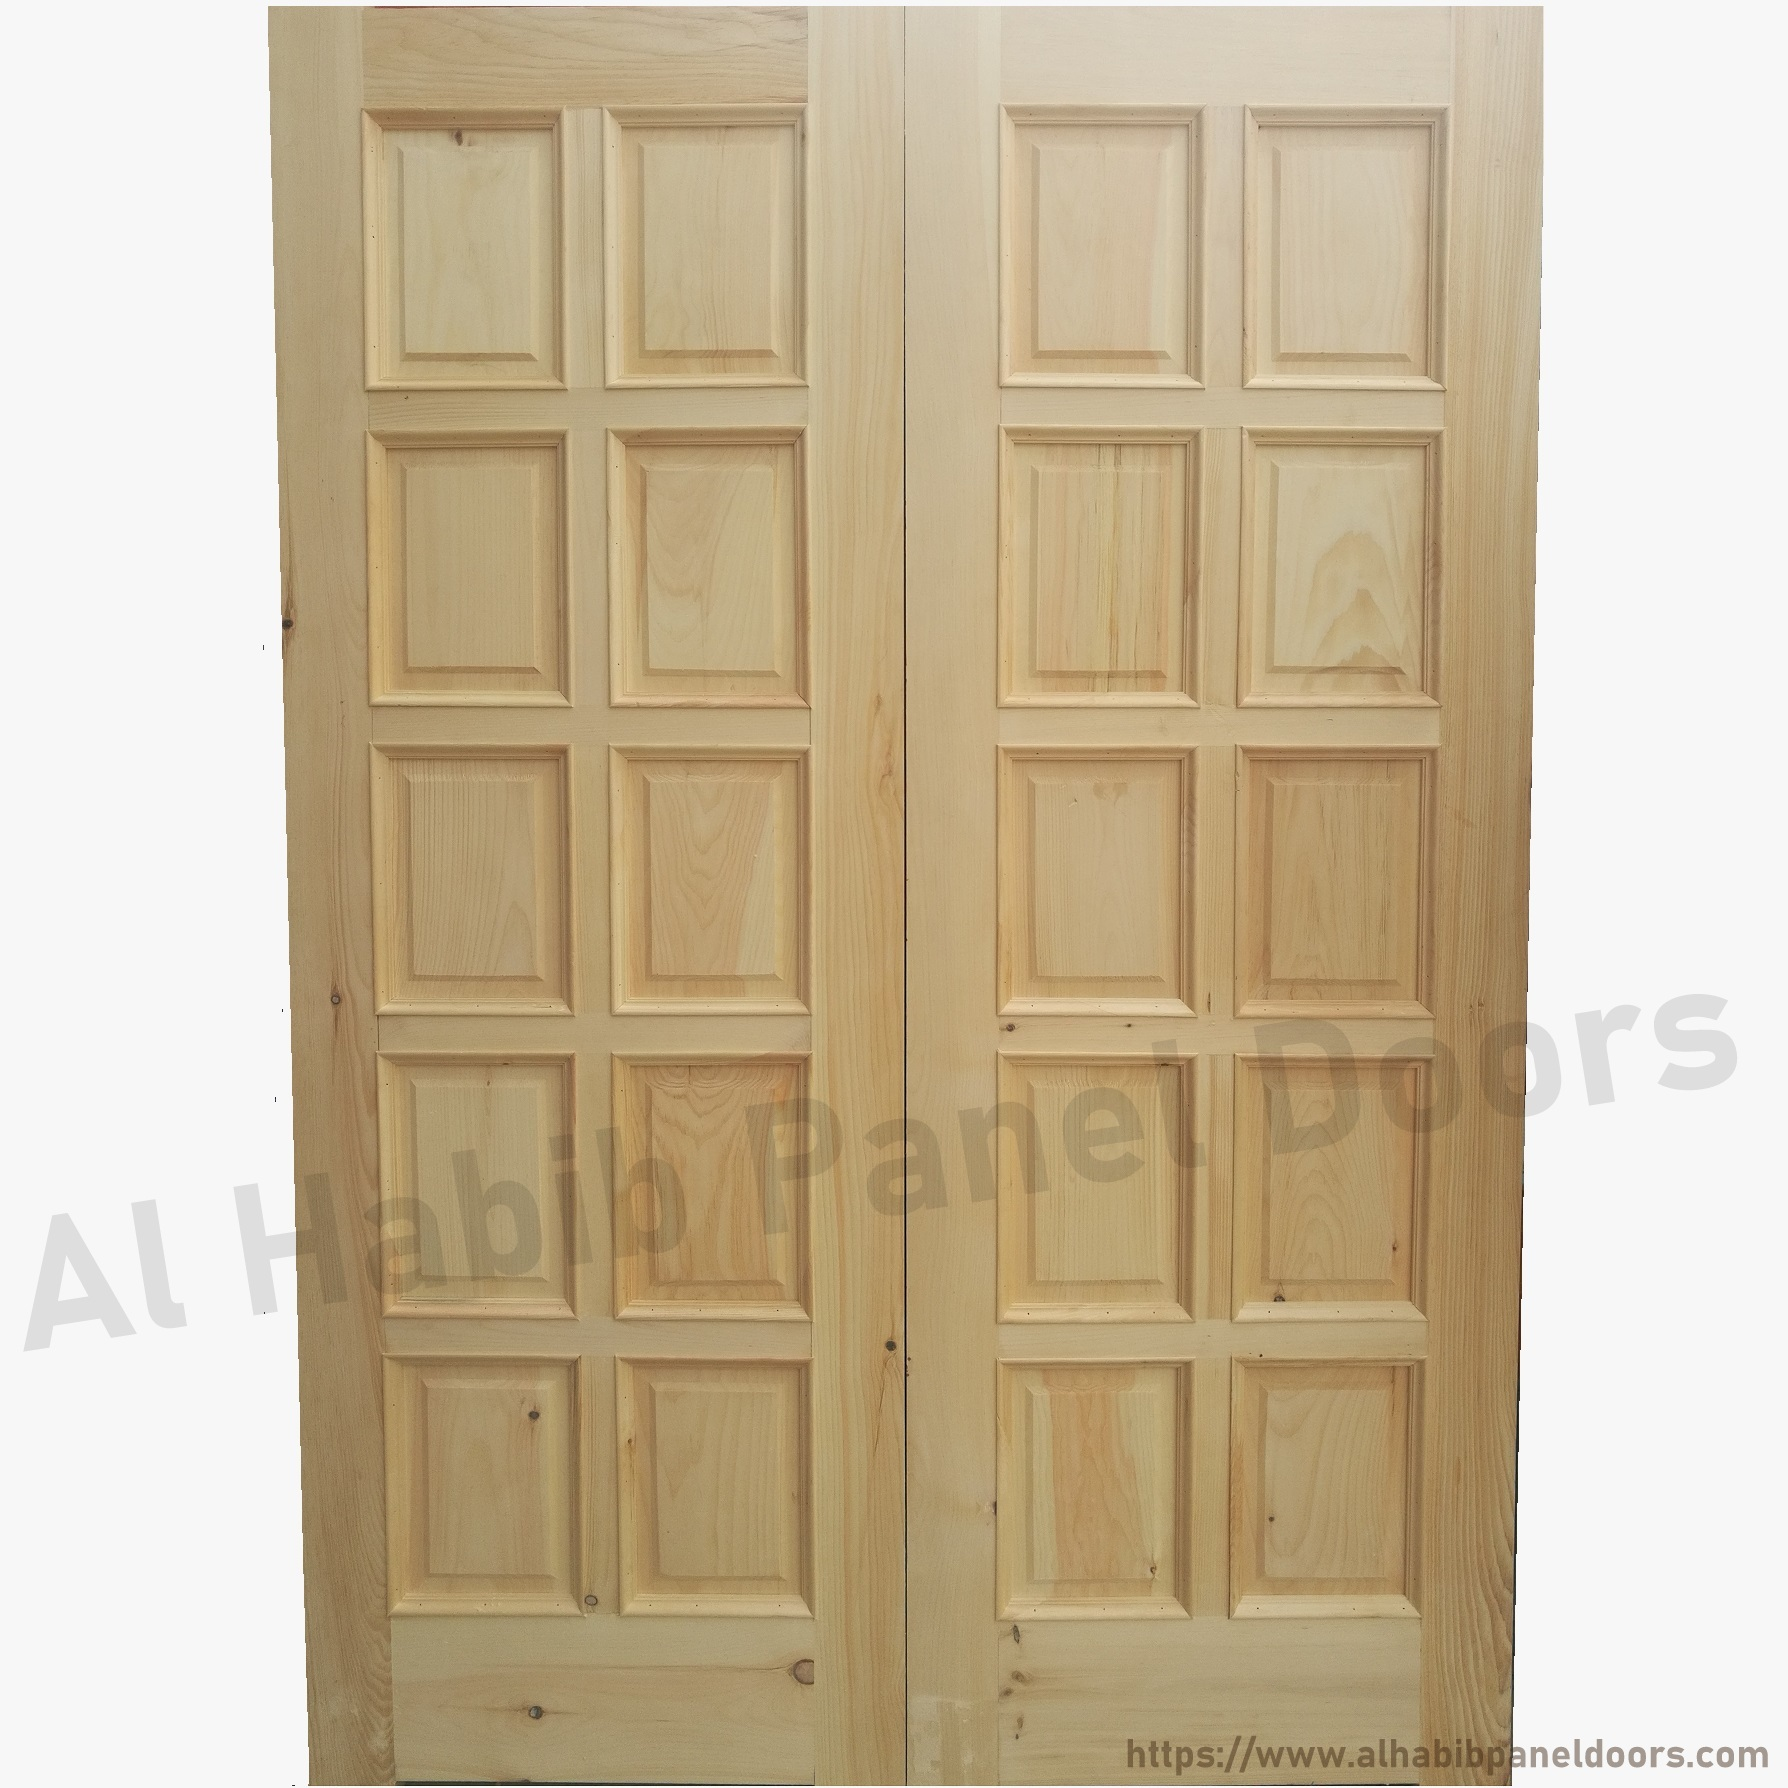 Latest wooden main double door designs native home for Wooden double door designs for main door